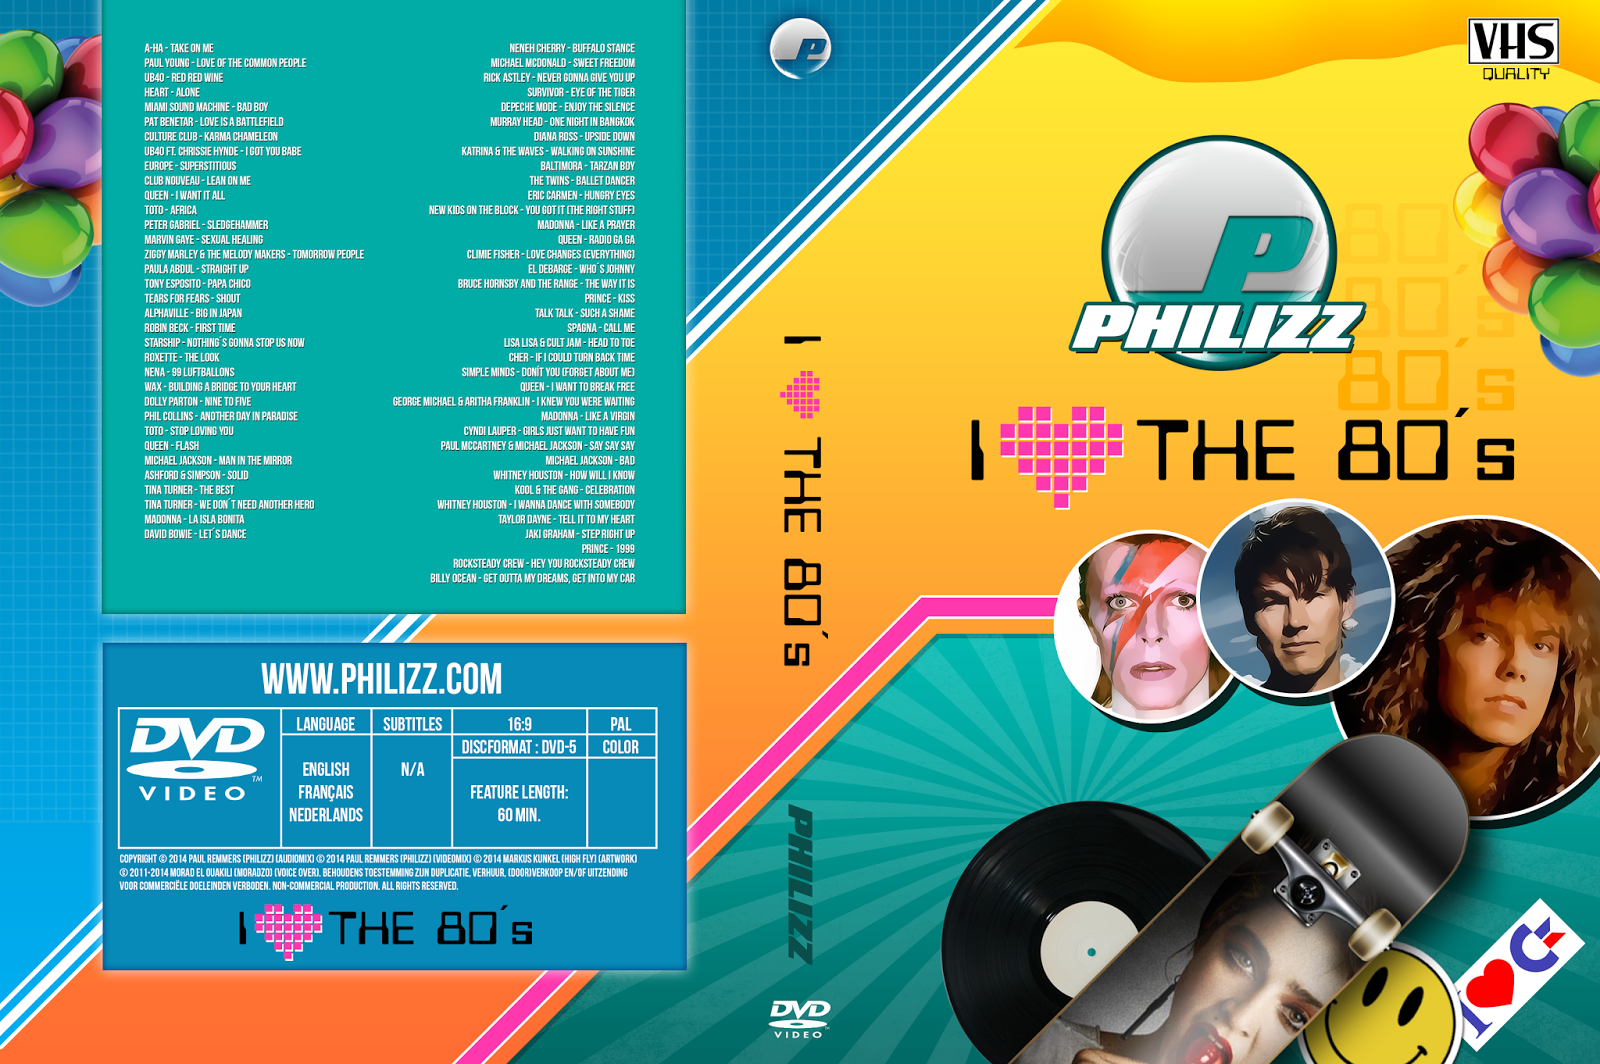 Download Philizz I Love The 80s DVD-R Philizz 2B  2BI 2BLove 2BThe 2B80 s 2BDVD